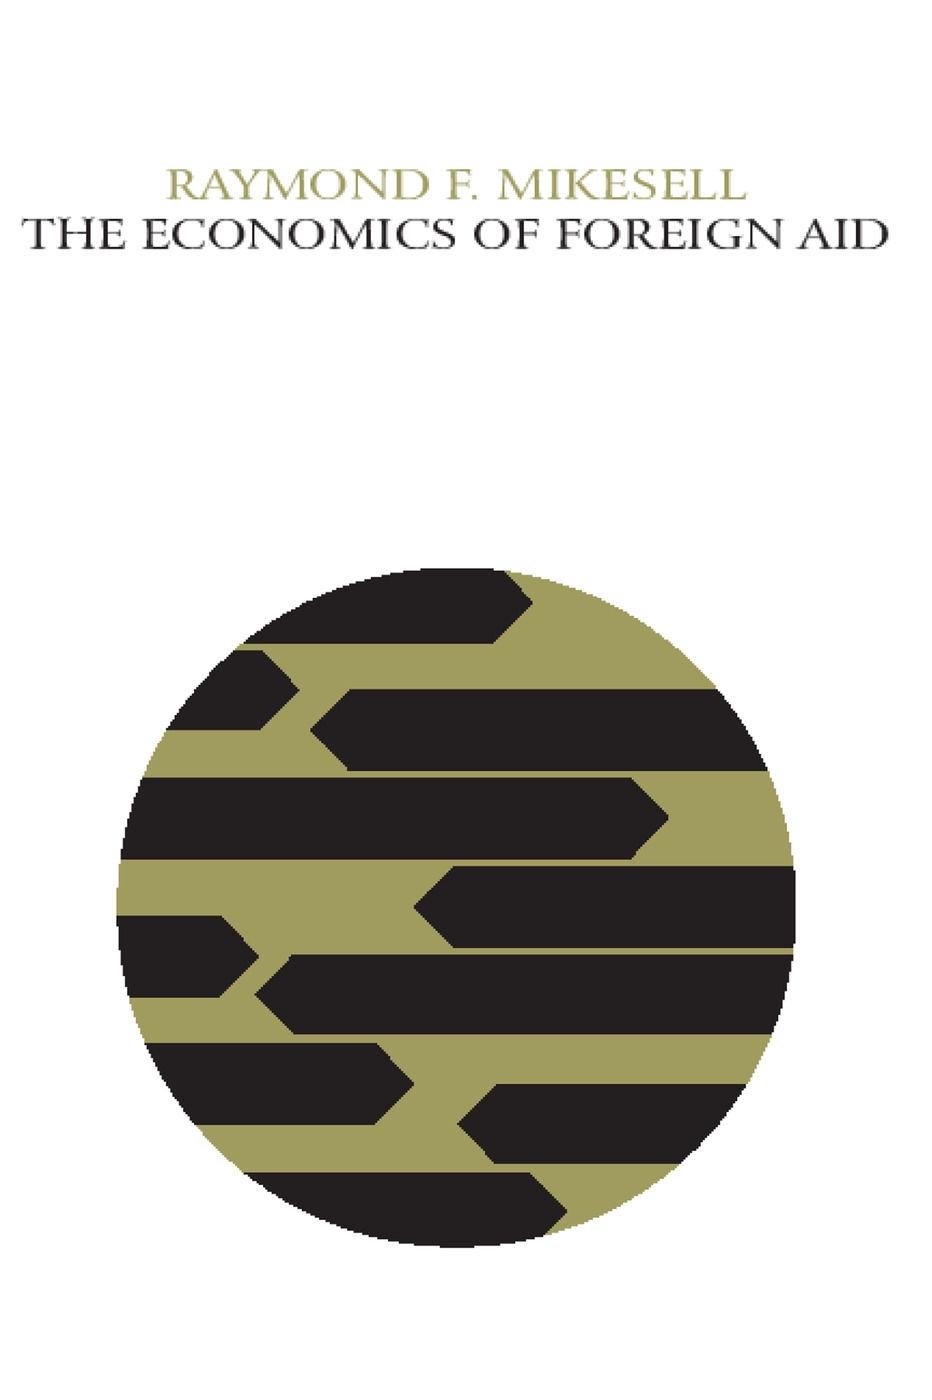 The Economics of Foreign Aid